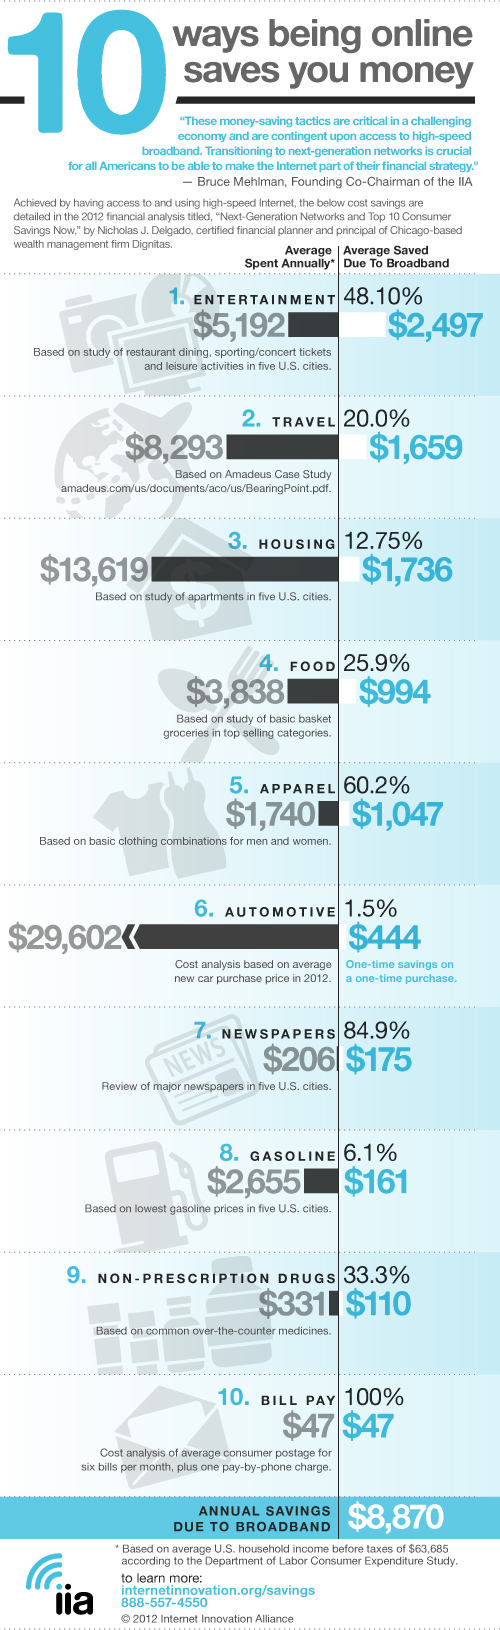 Top Ten Areas of Savings 2012